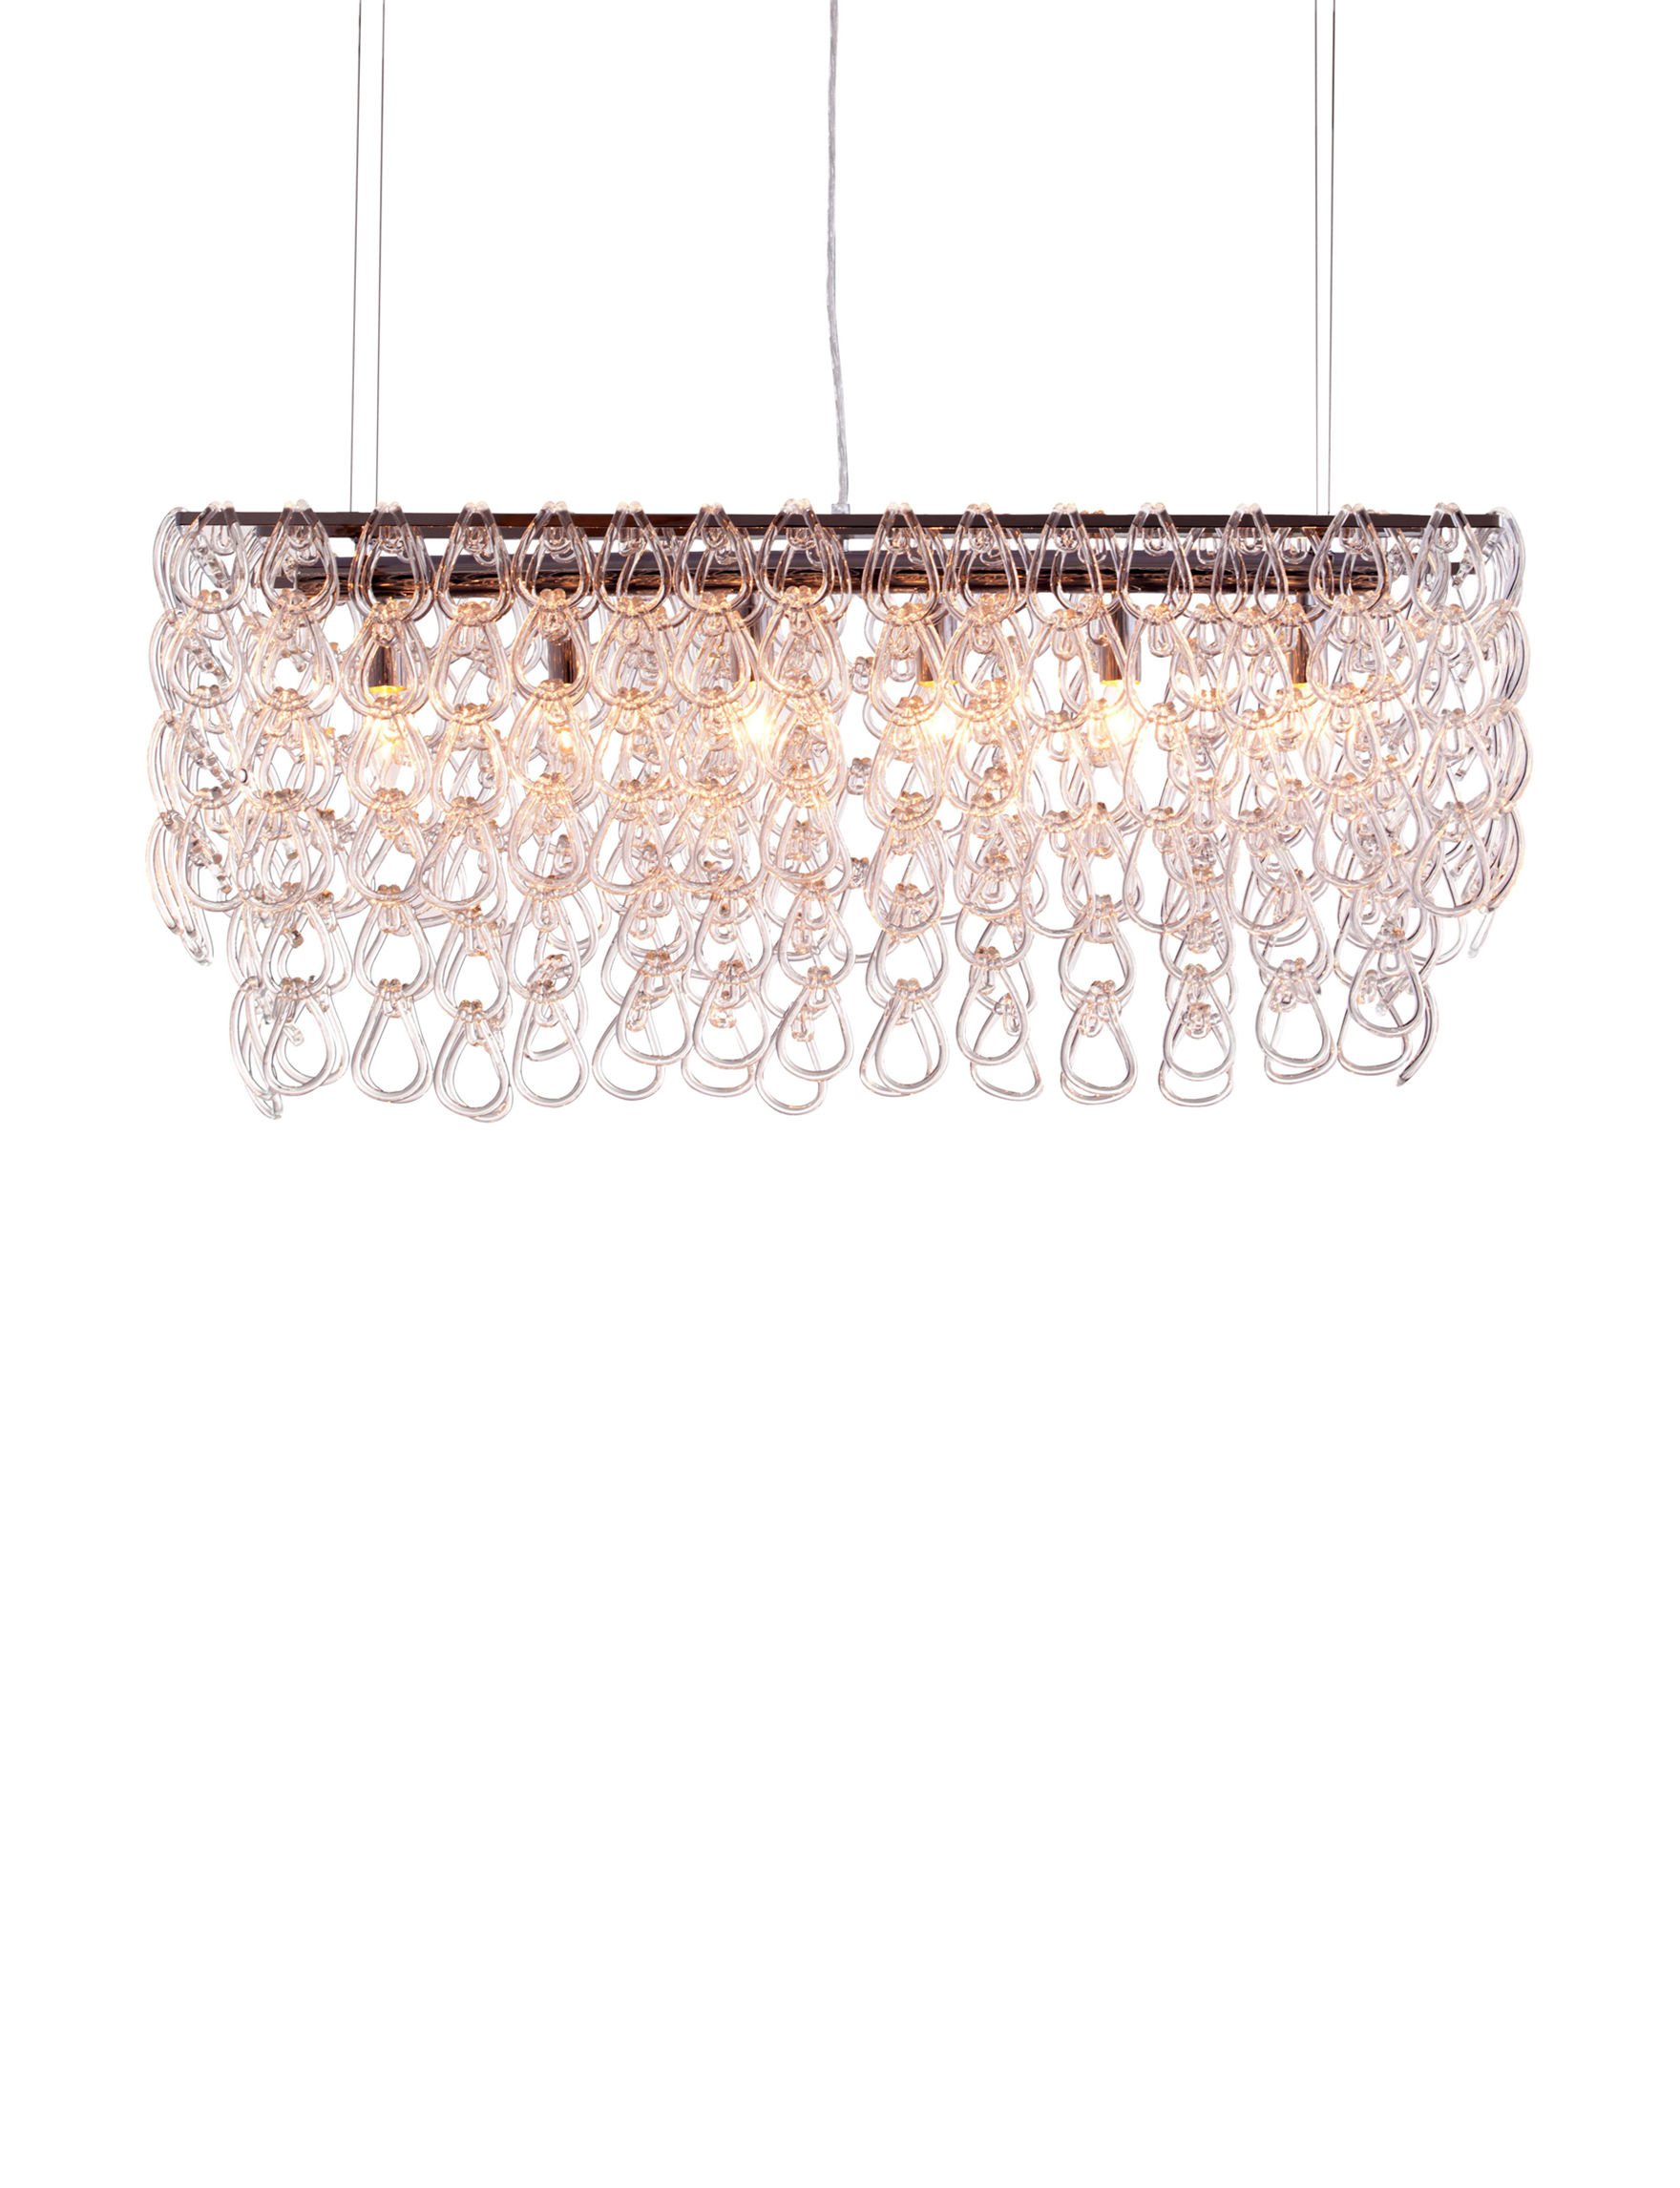 Zuo Modern Clear Lighting & Lamps